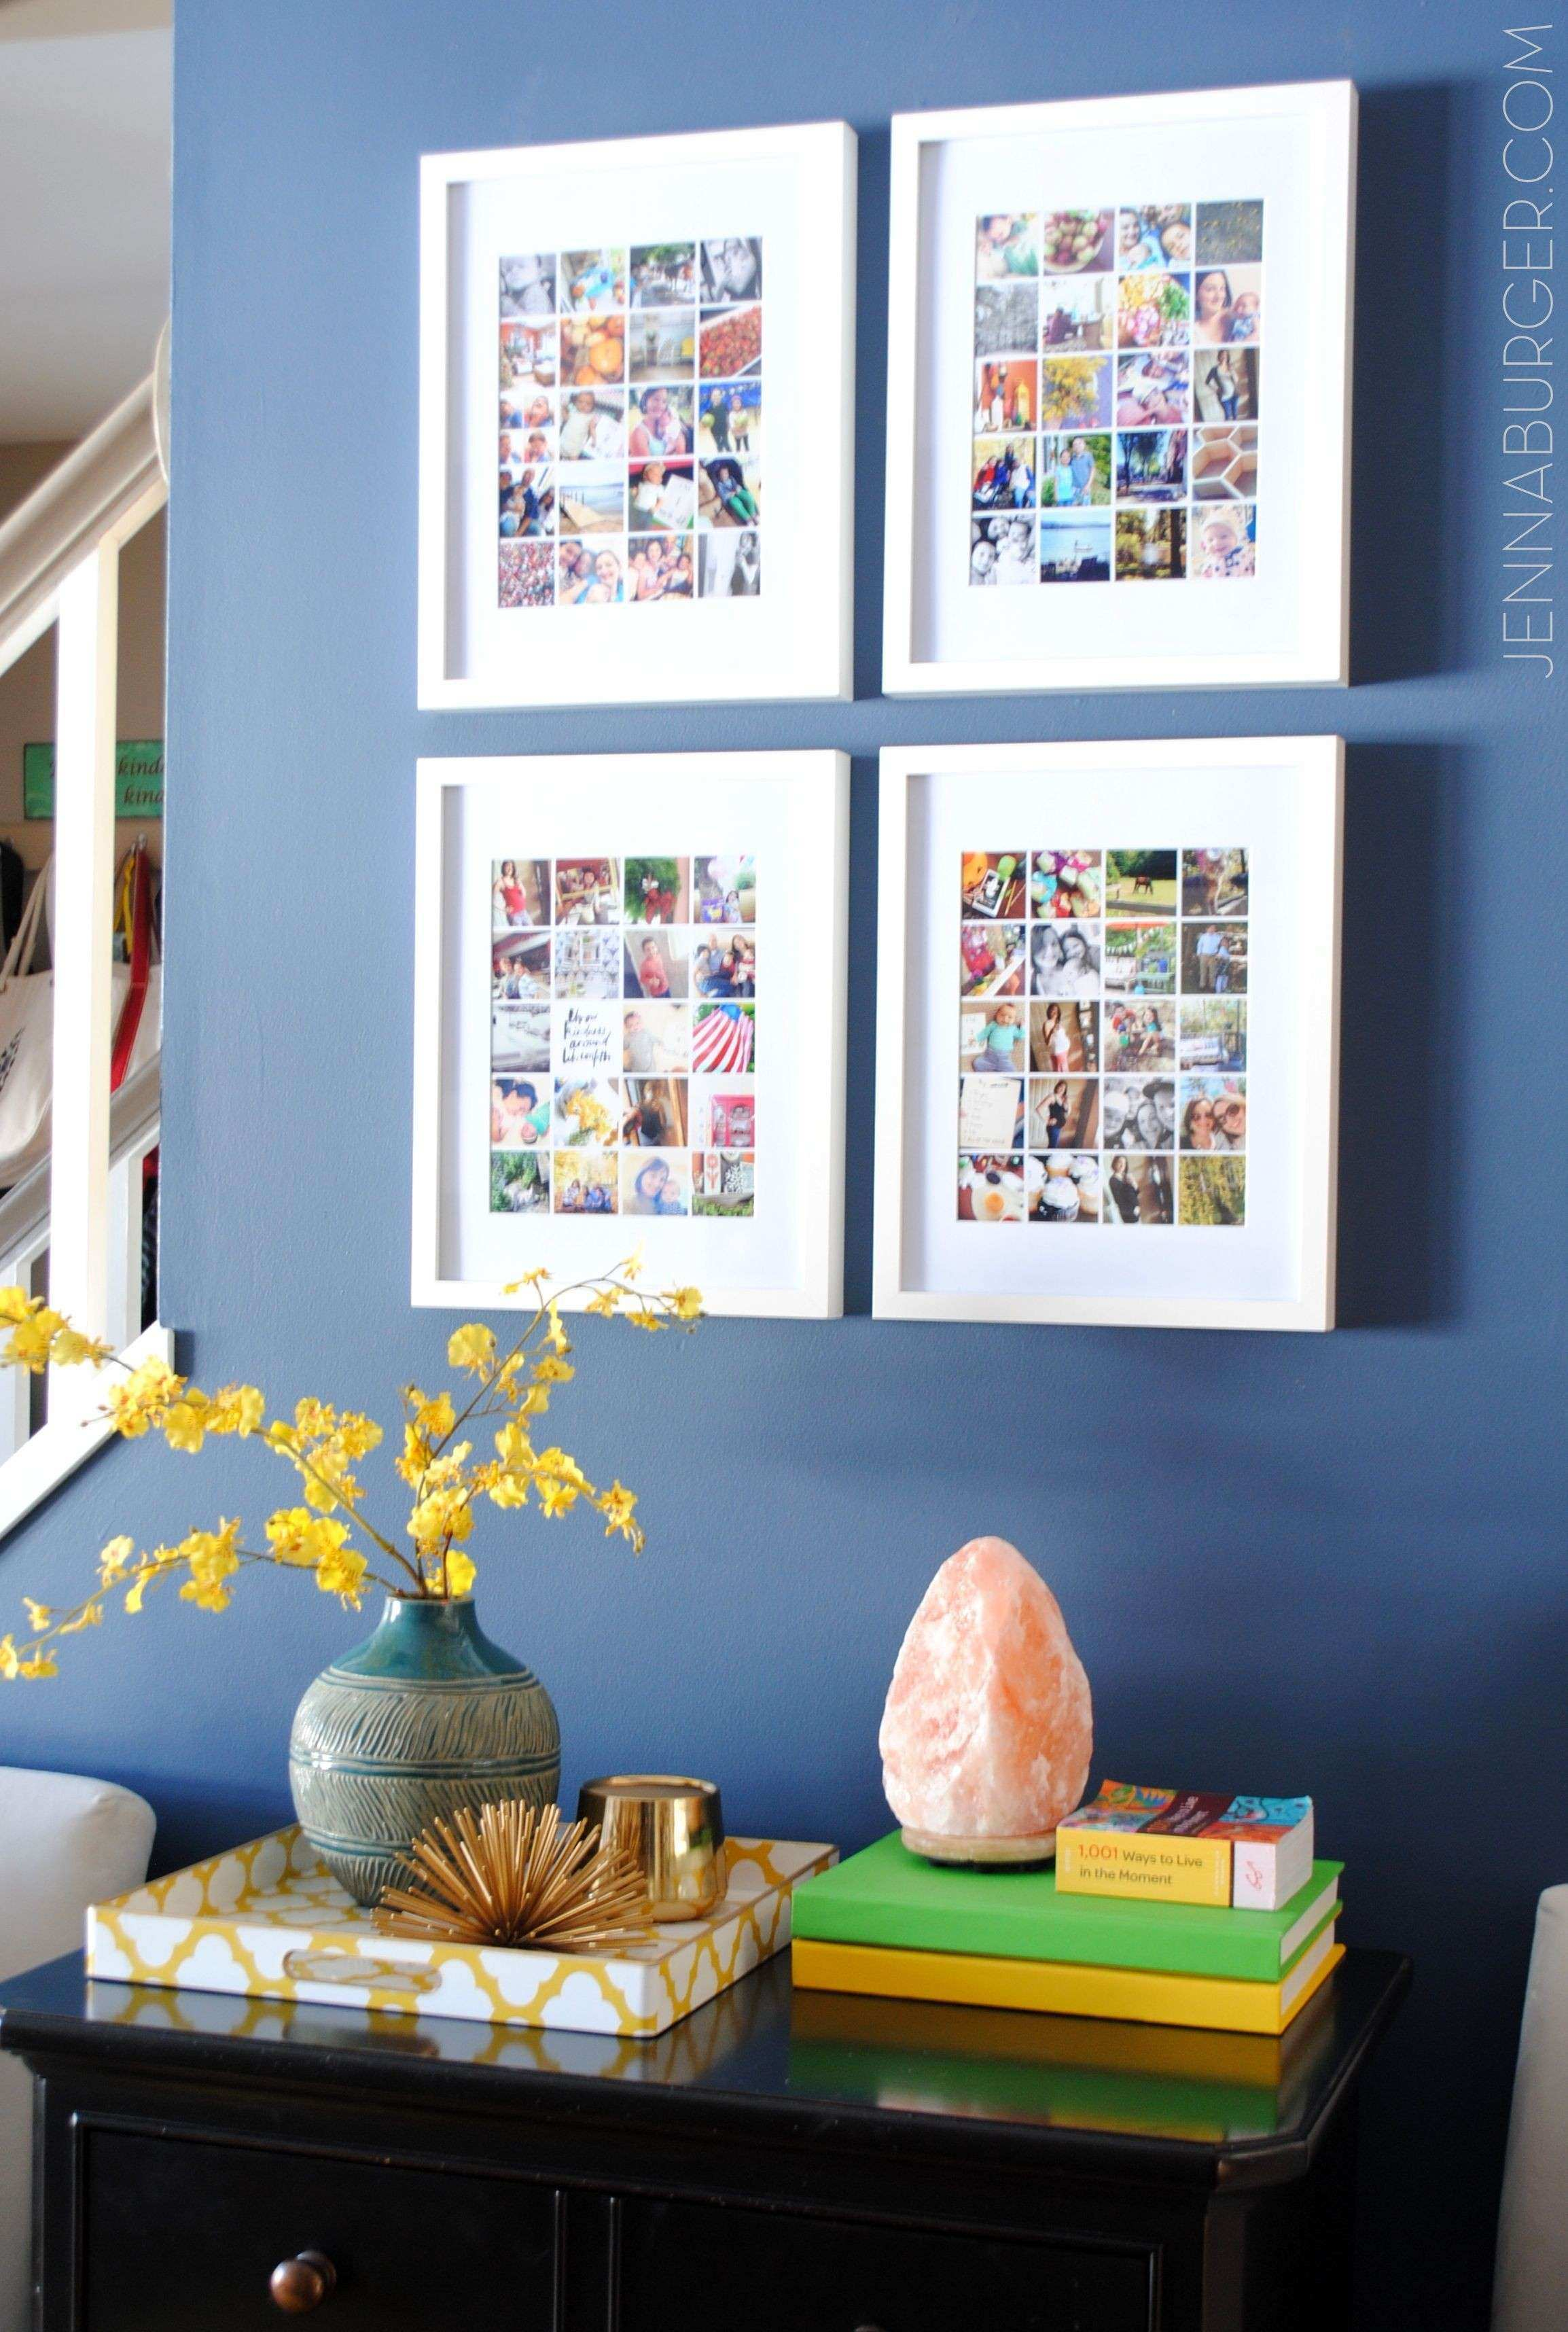 Wall Collage Picture Frames Awesome Easy to Make Collage Using ...